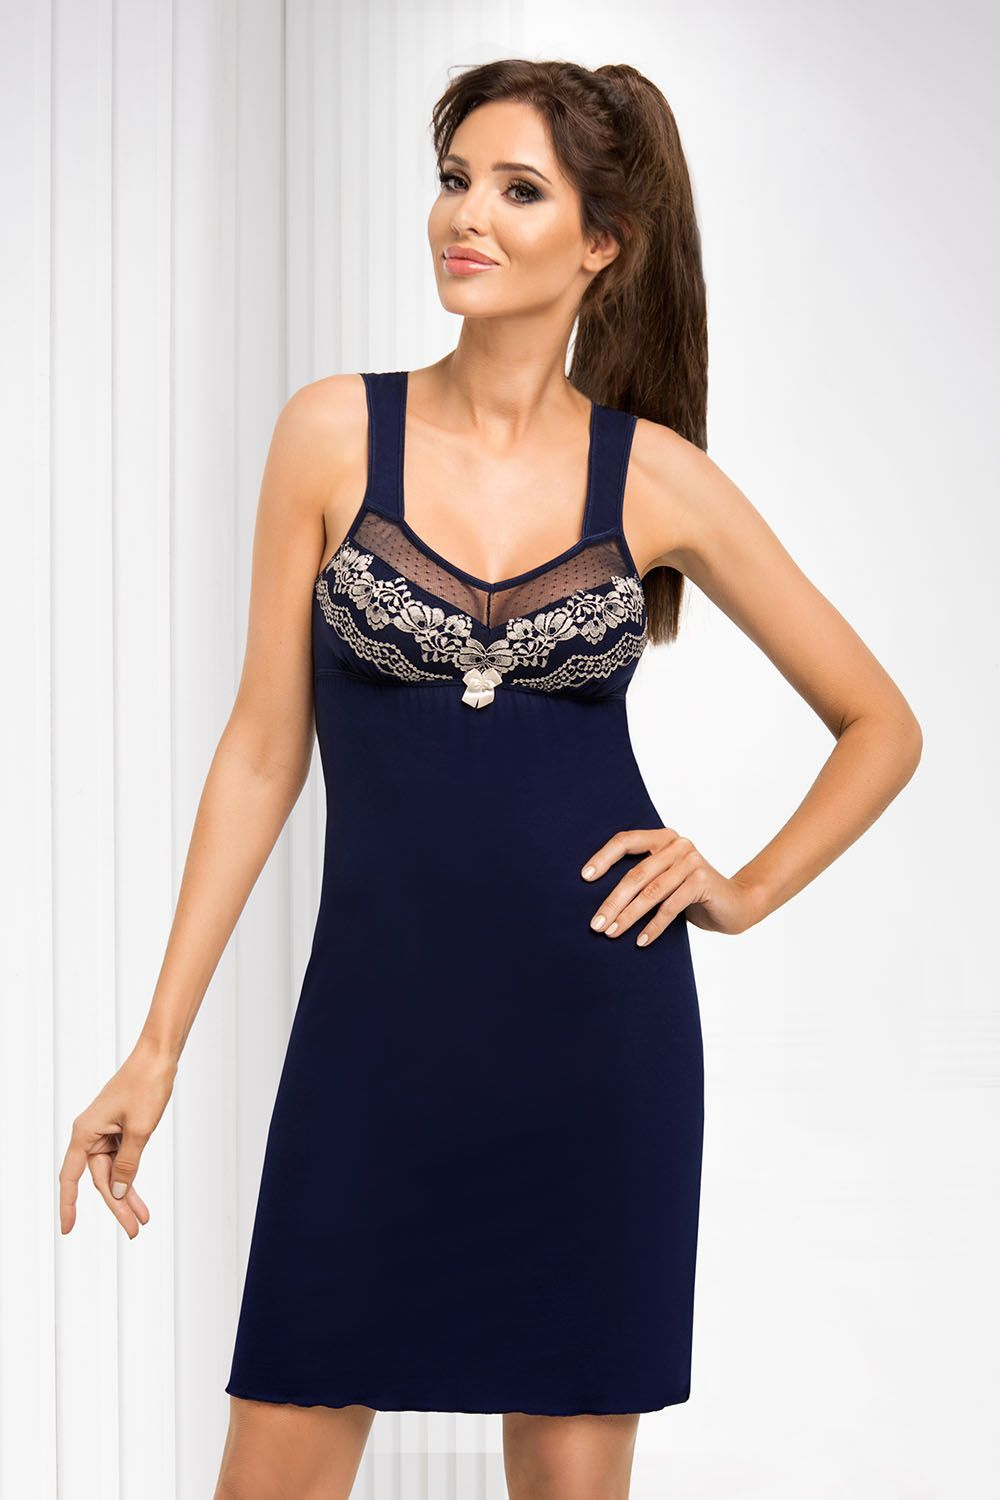 Jasmine nightdress Dark Blue, don_jasmine nightdress dark blue, donna, Польша купить оптом на на Vishcopt.ru